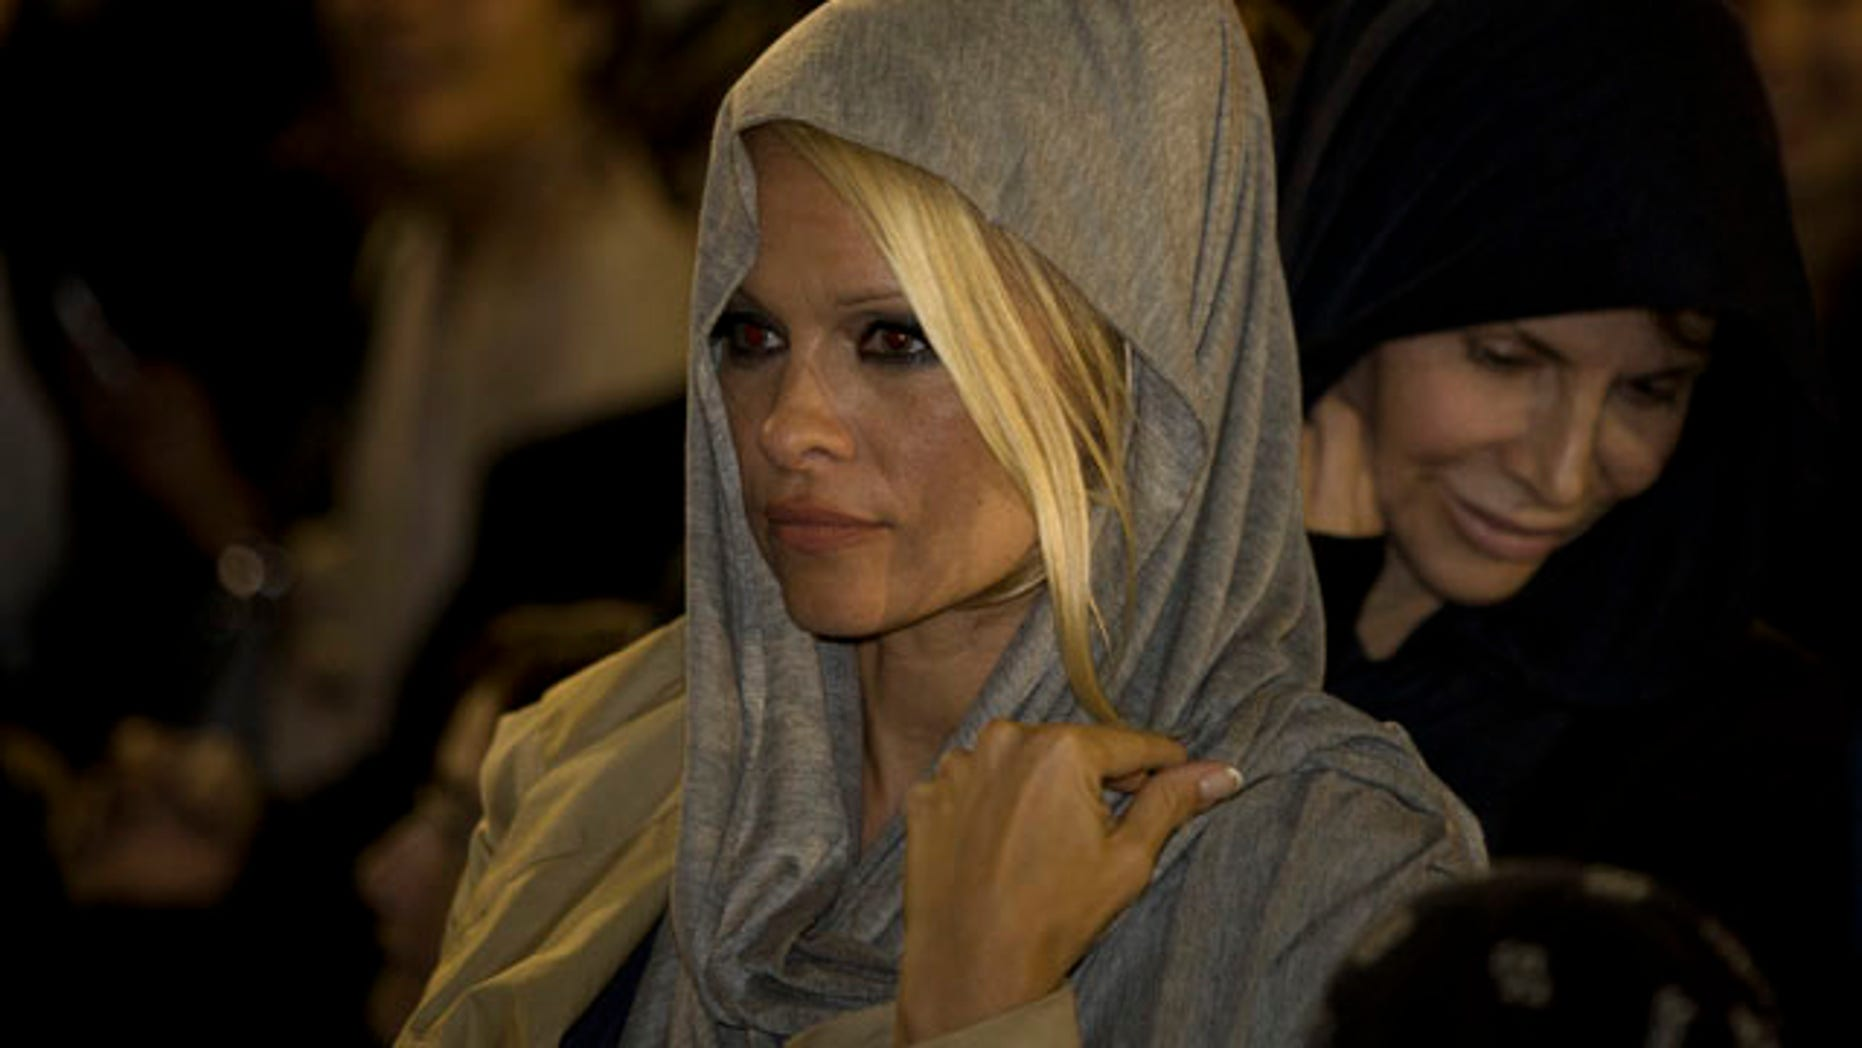 Nov. 7, 2010: U.S. actress Pamela Anderson is seen at the Western Wall, Judiasm's holiest site, in Jerusalem's Old City.